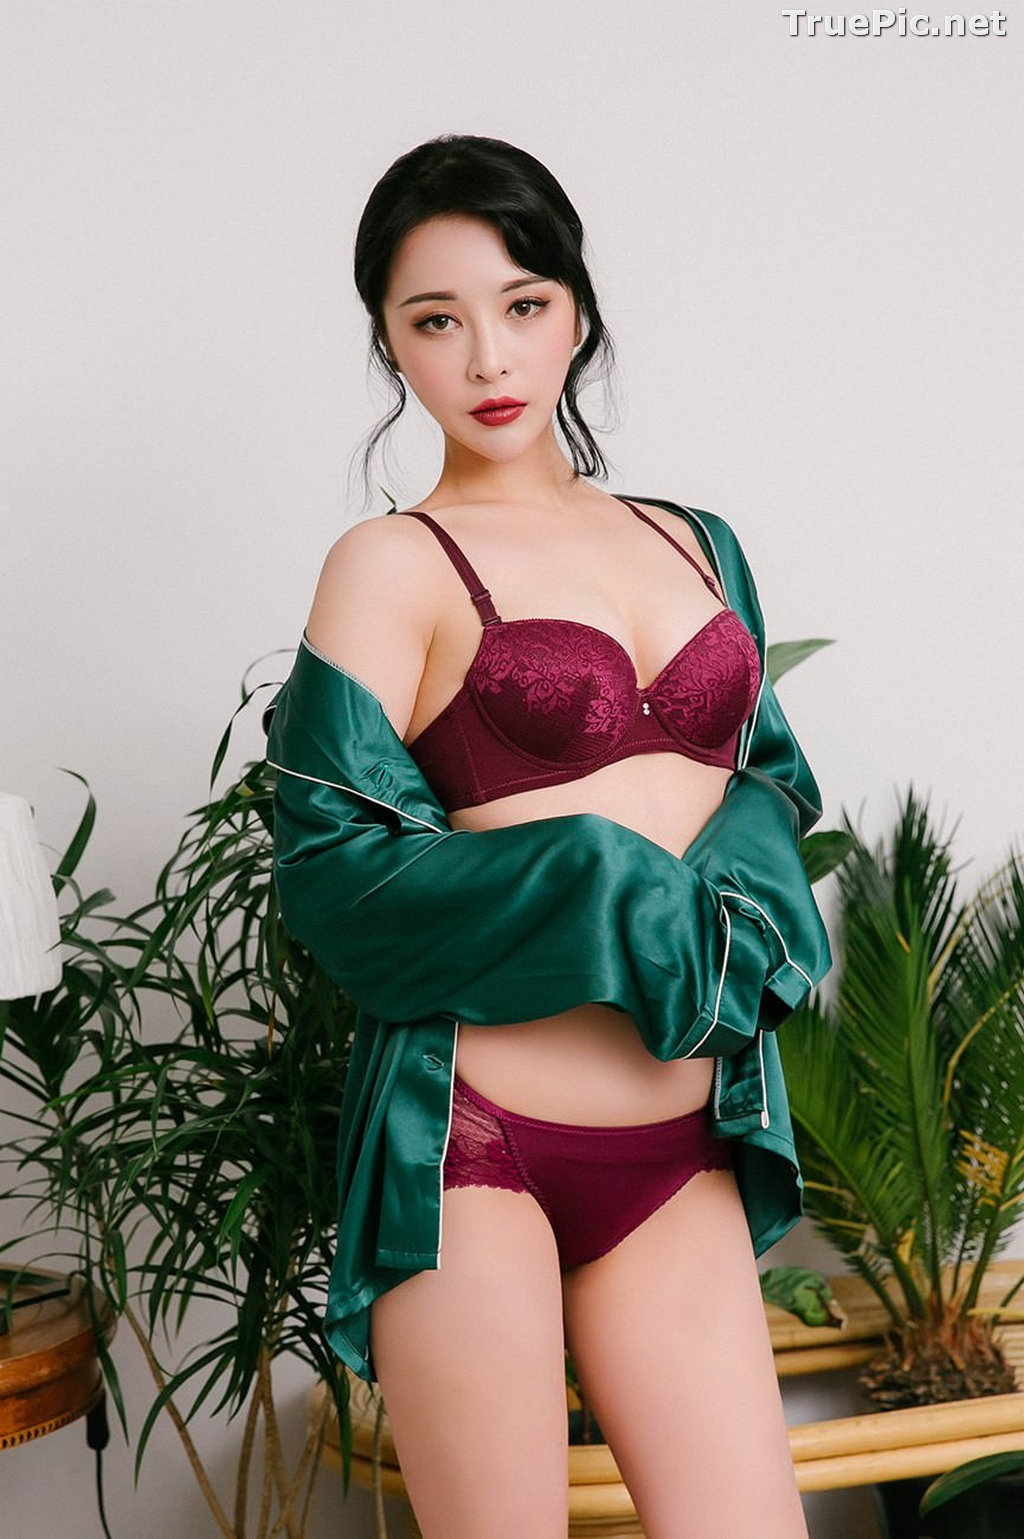 Image Ryu Hyeonju - Korean Fashion Model - Pijama and Lingerie Set - TruePic.net - Picture-6